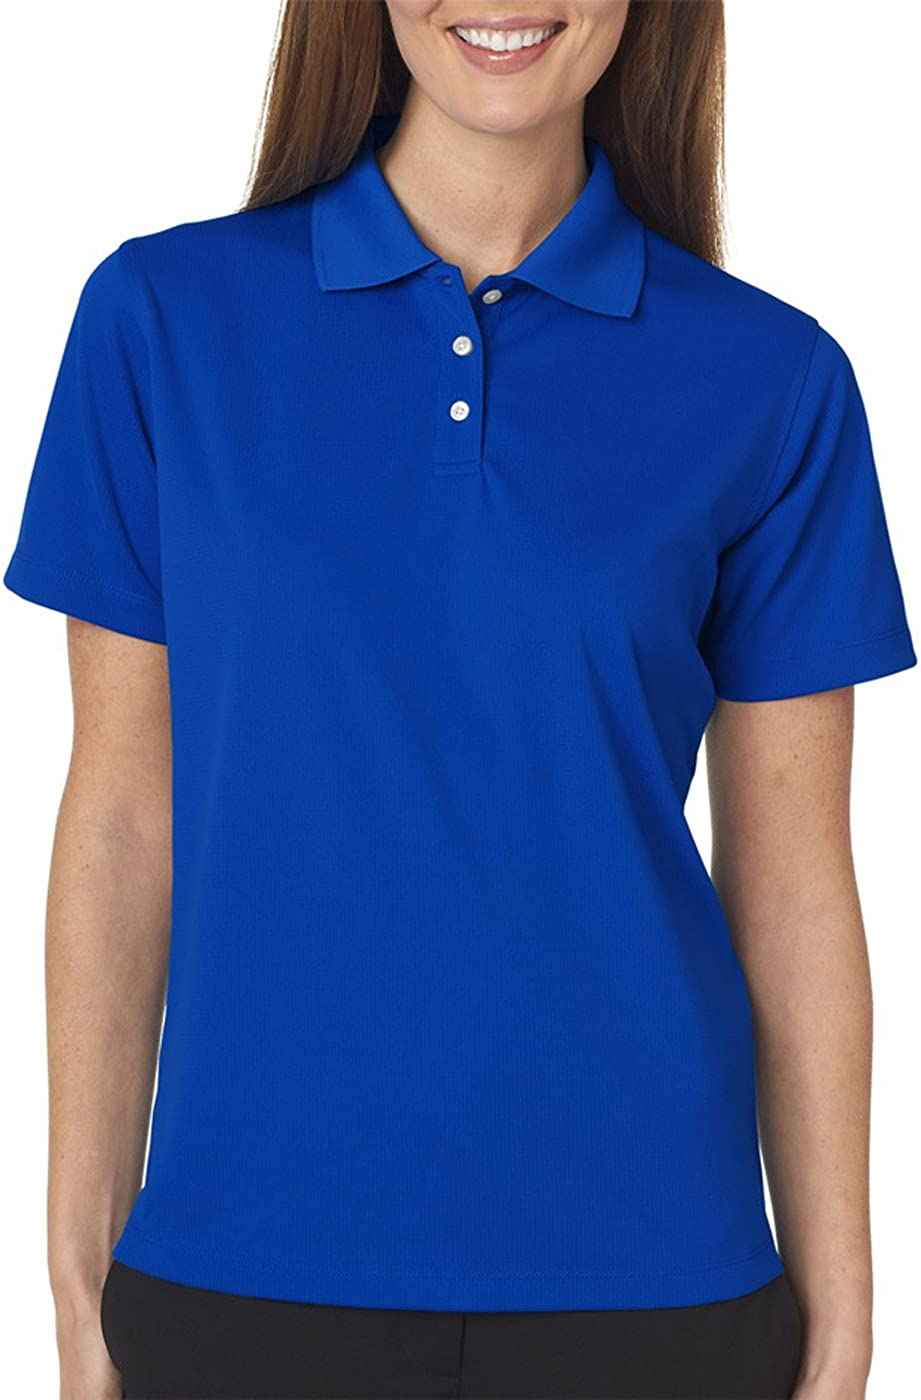 UltraClubs Women's Cool & Dry Stain-Release Performance Polo Tee, Royal, Small